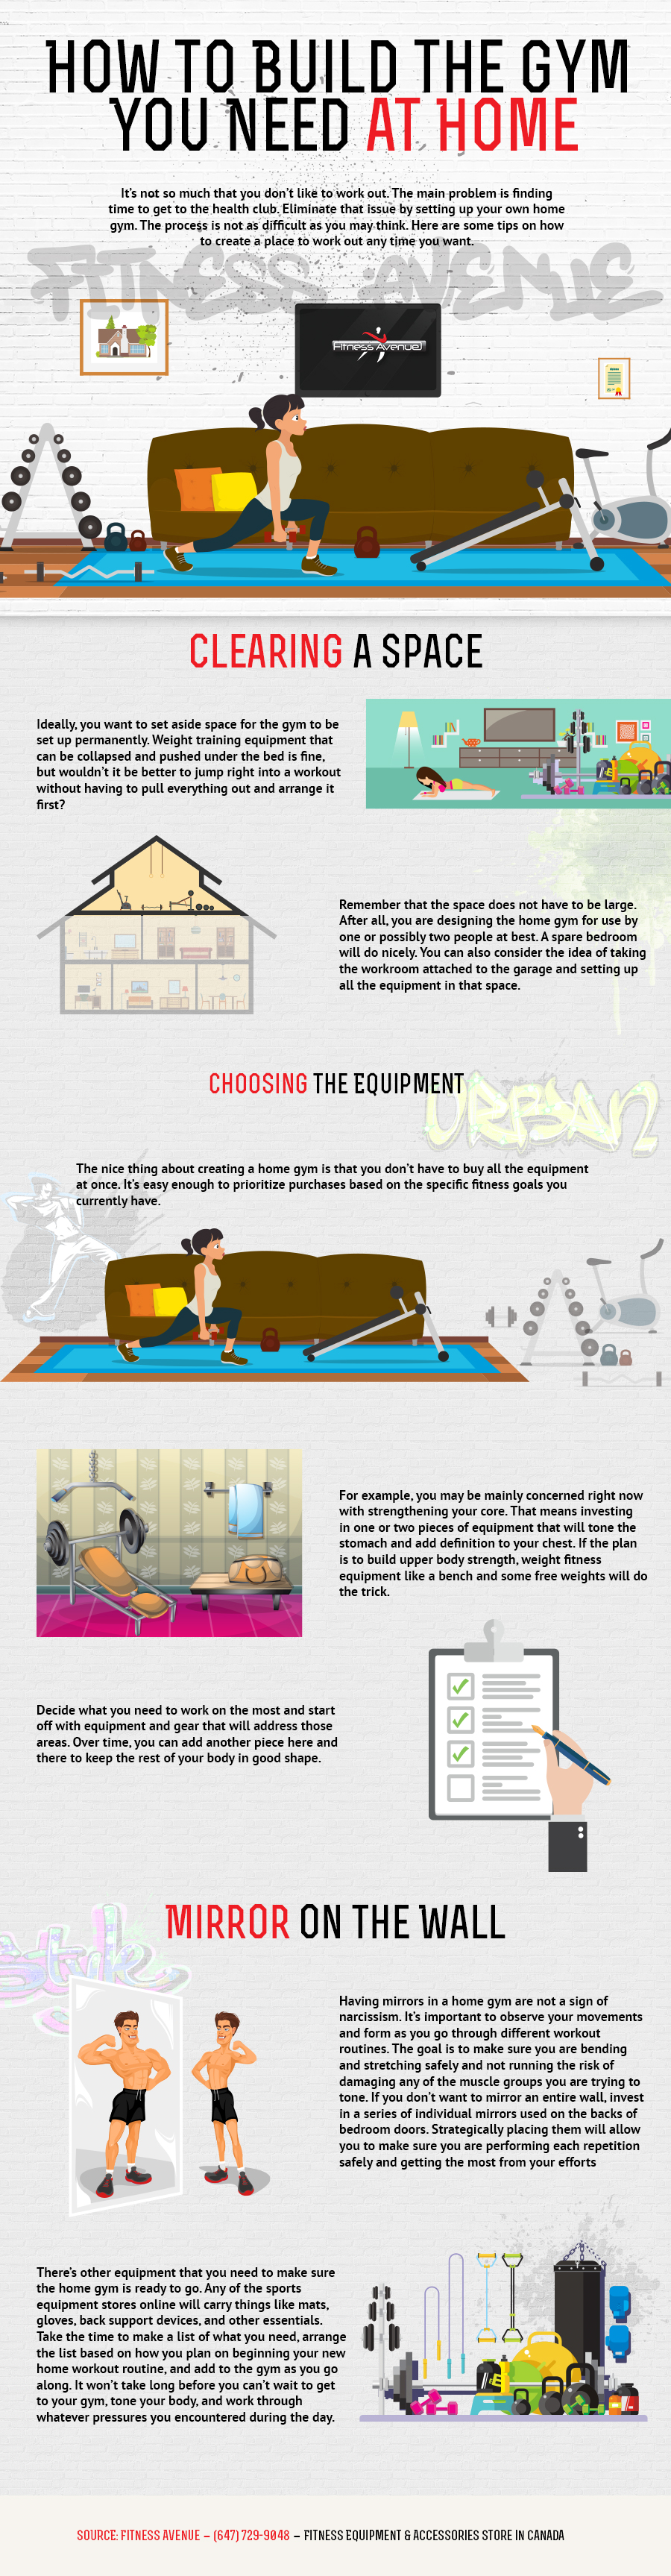 How to Build the Gym You Need at Home - Fitness Avenue Infographic